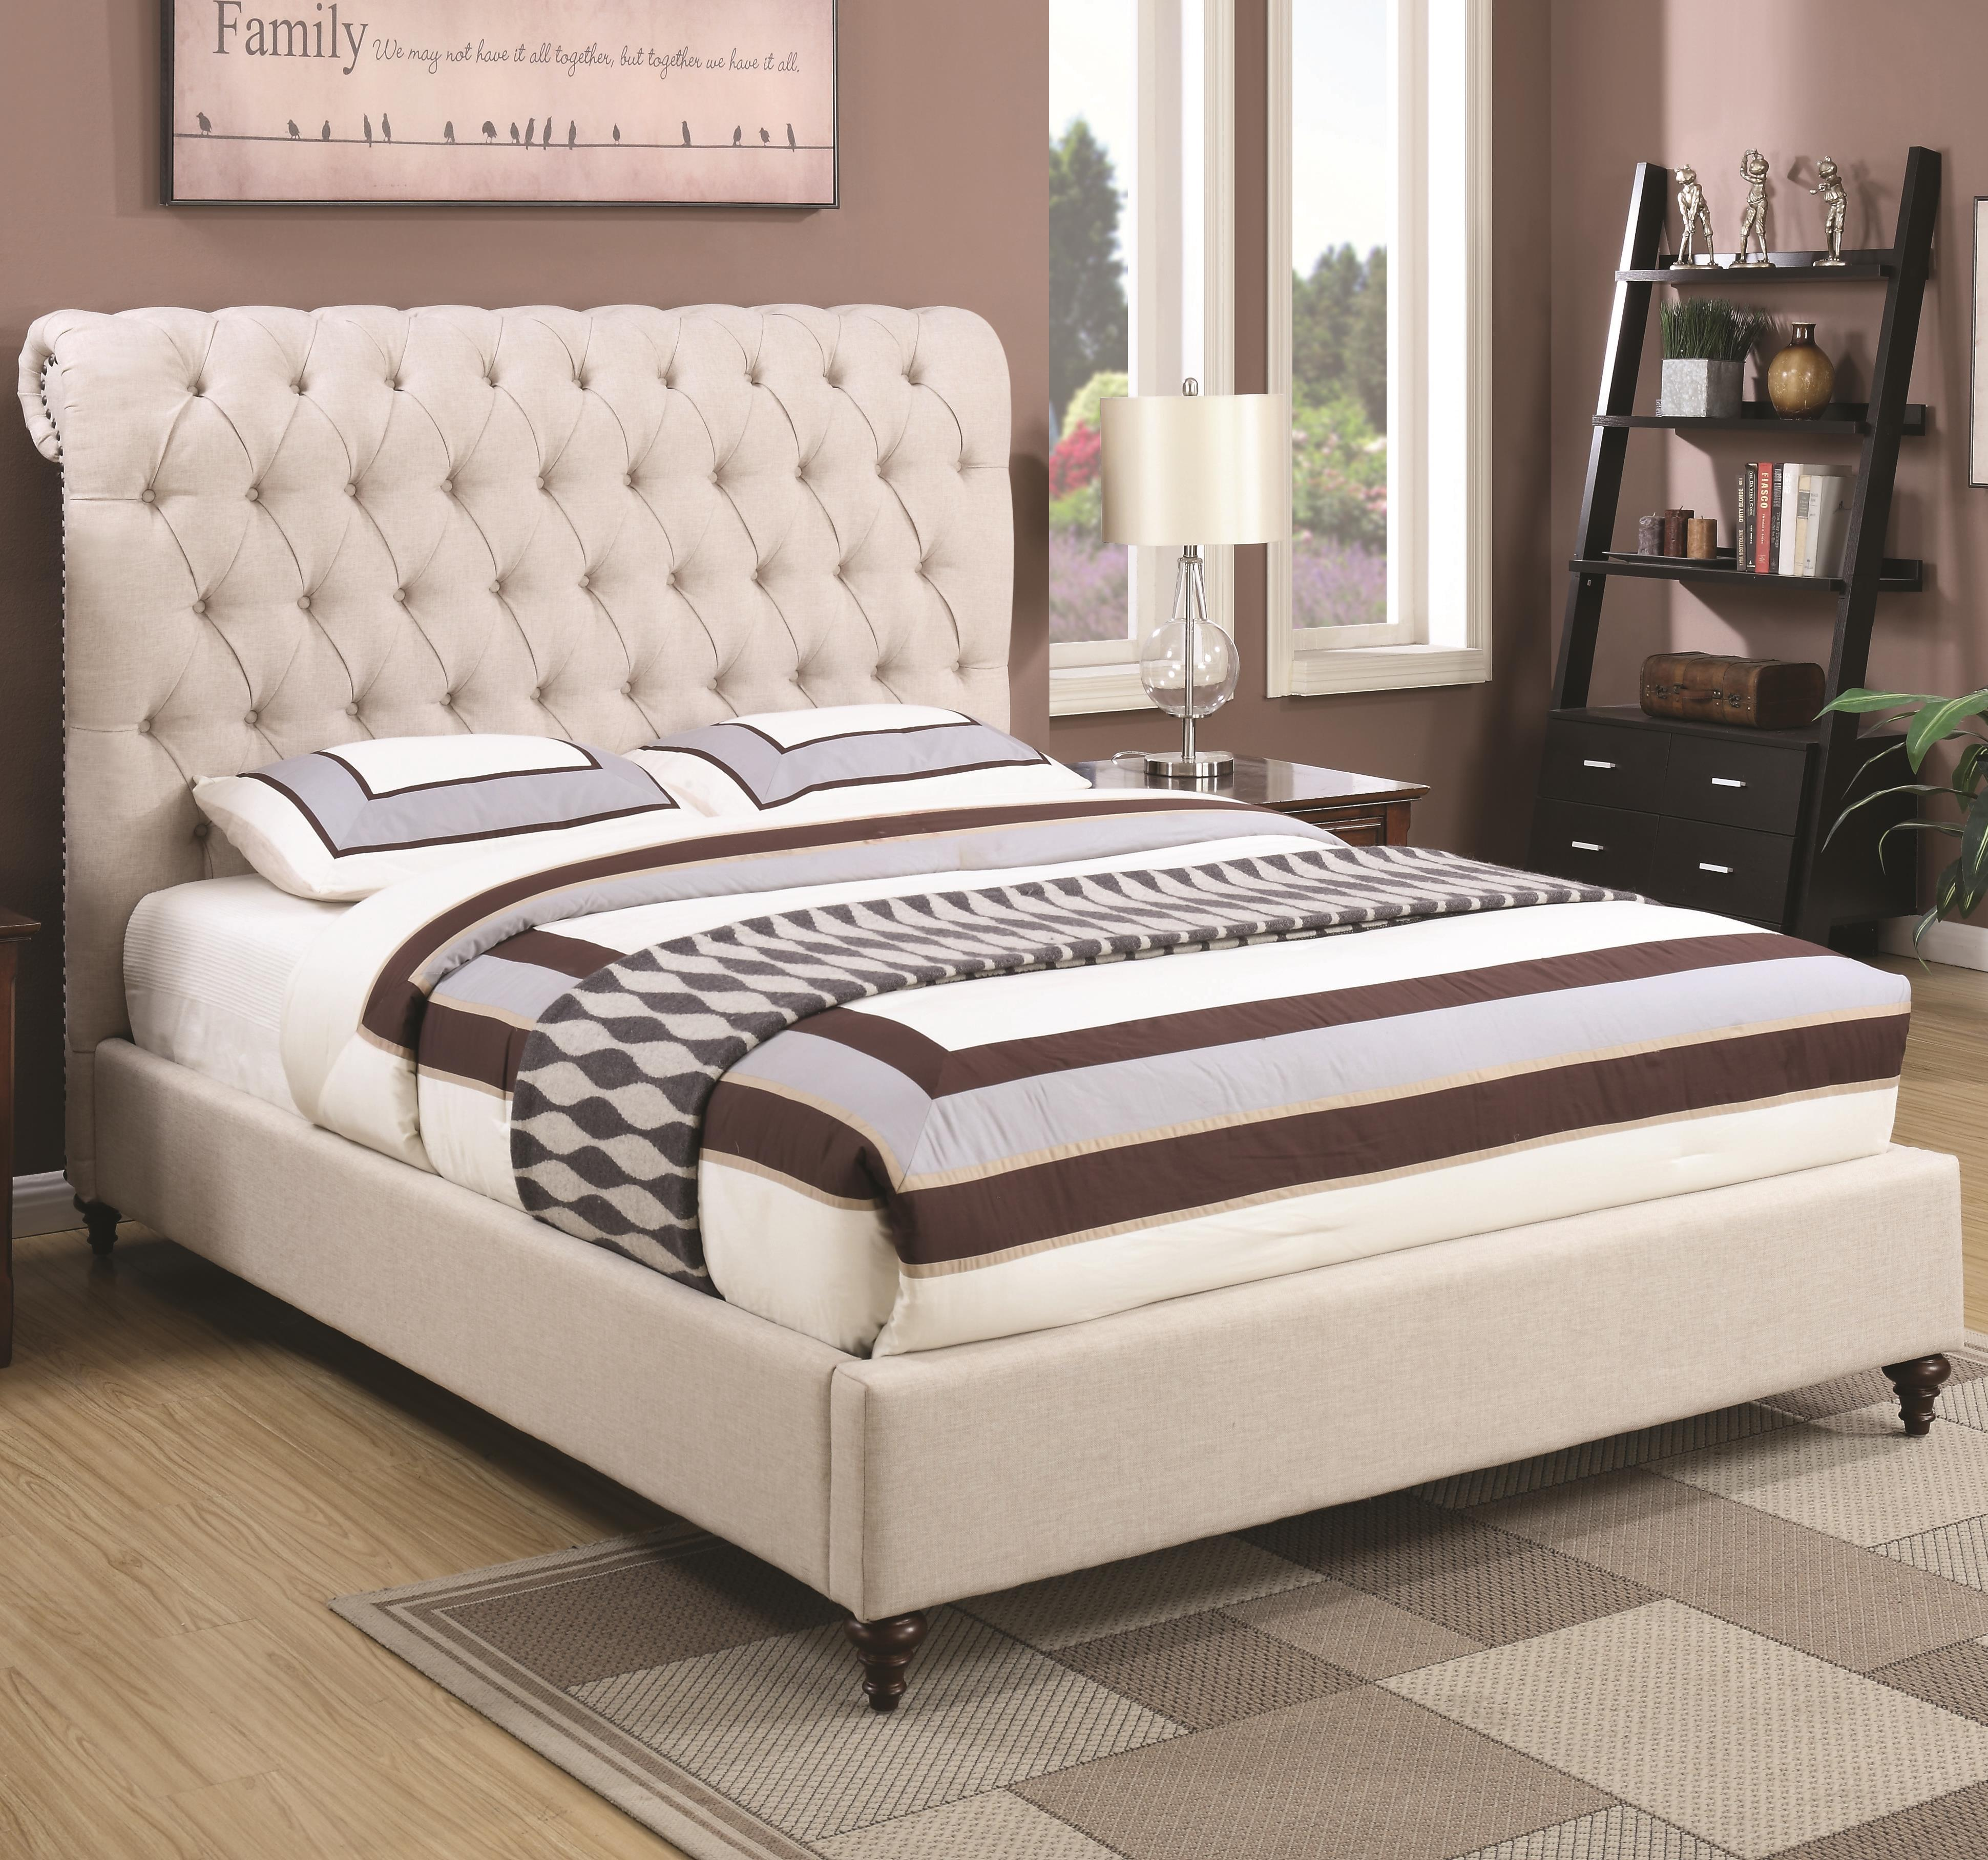 Devon King Upholstered Bed by Coaster at Northeast Factory Direct